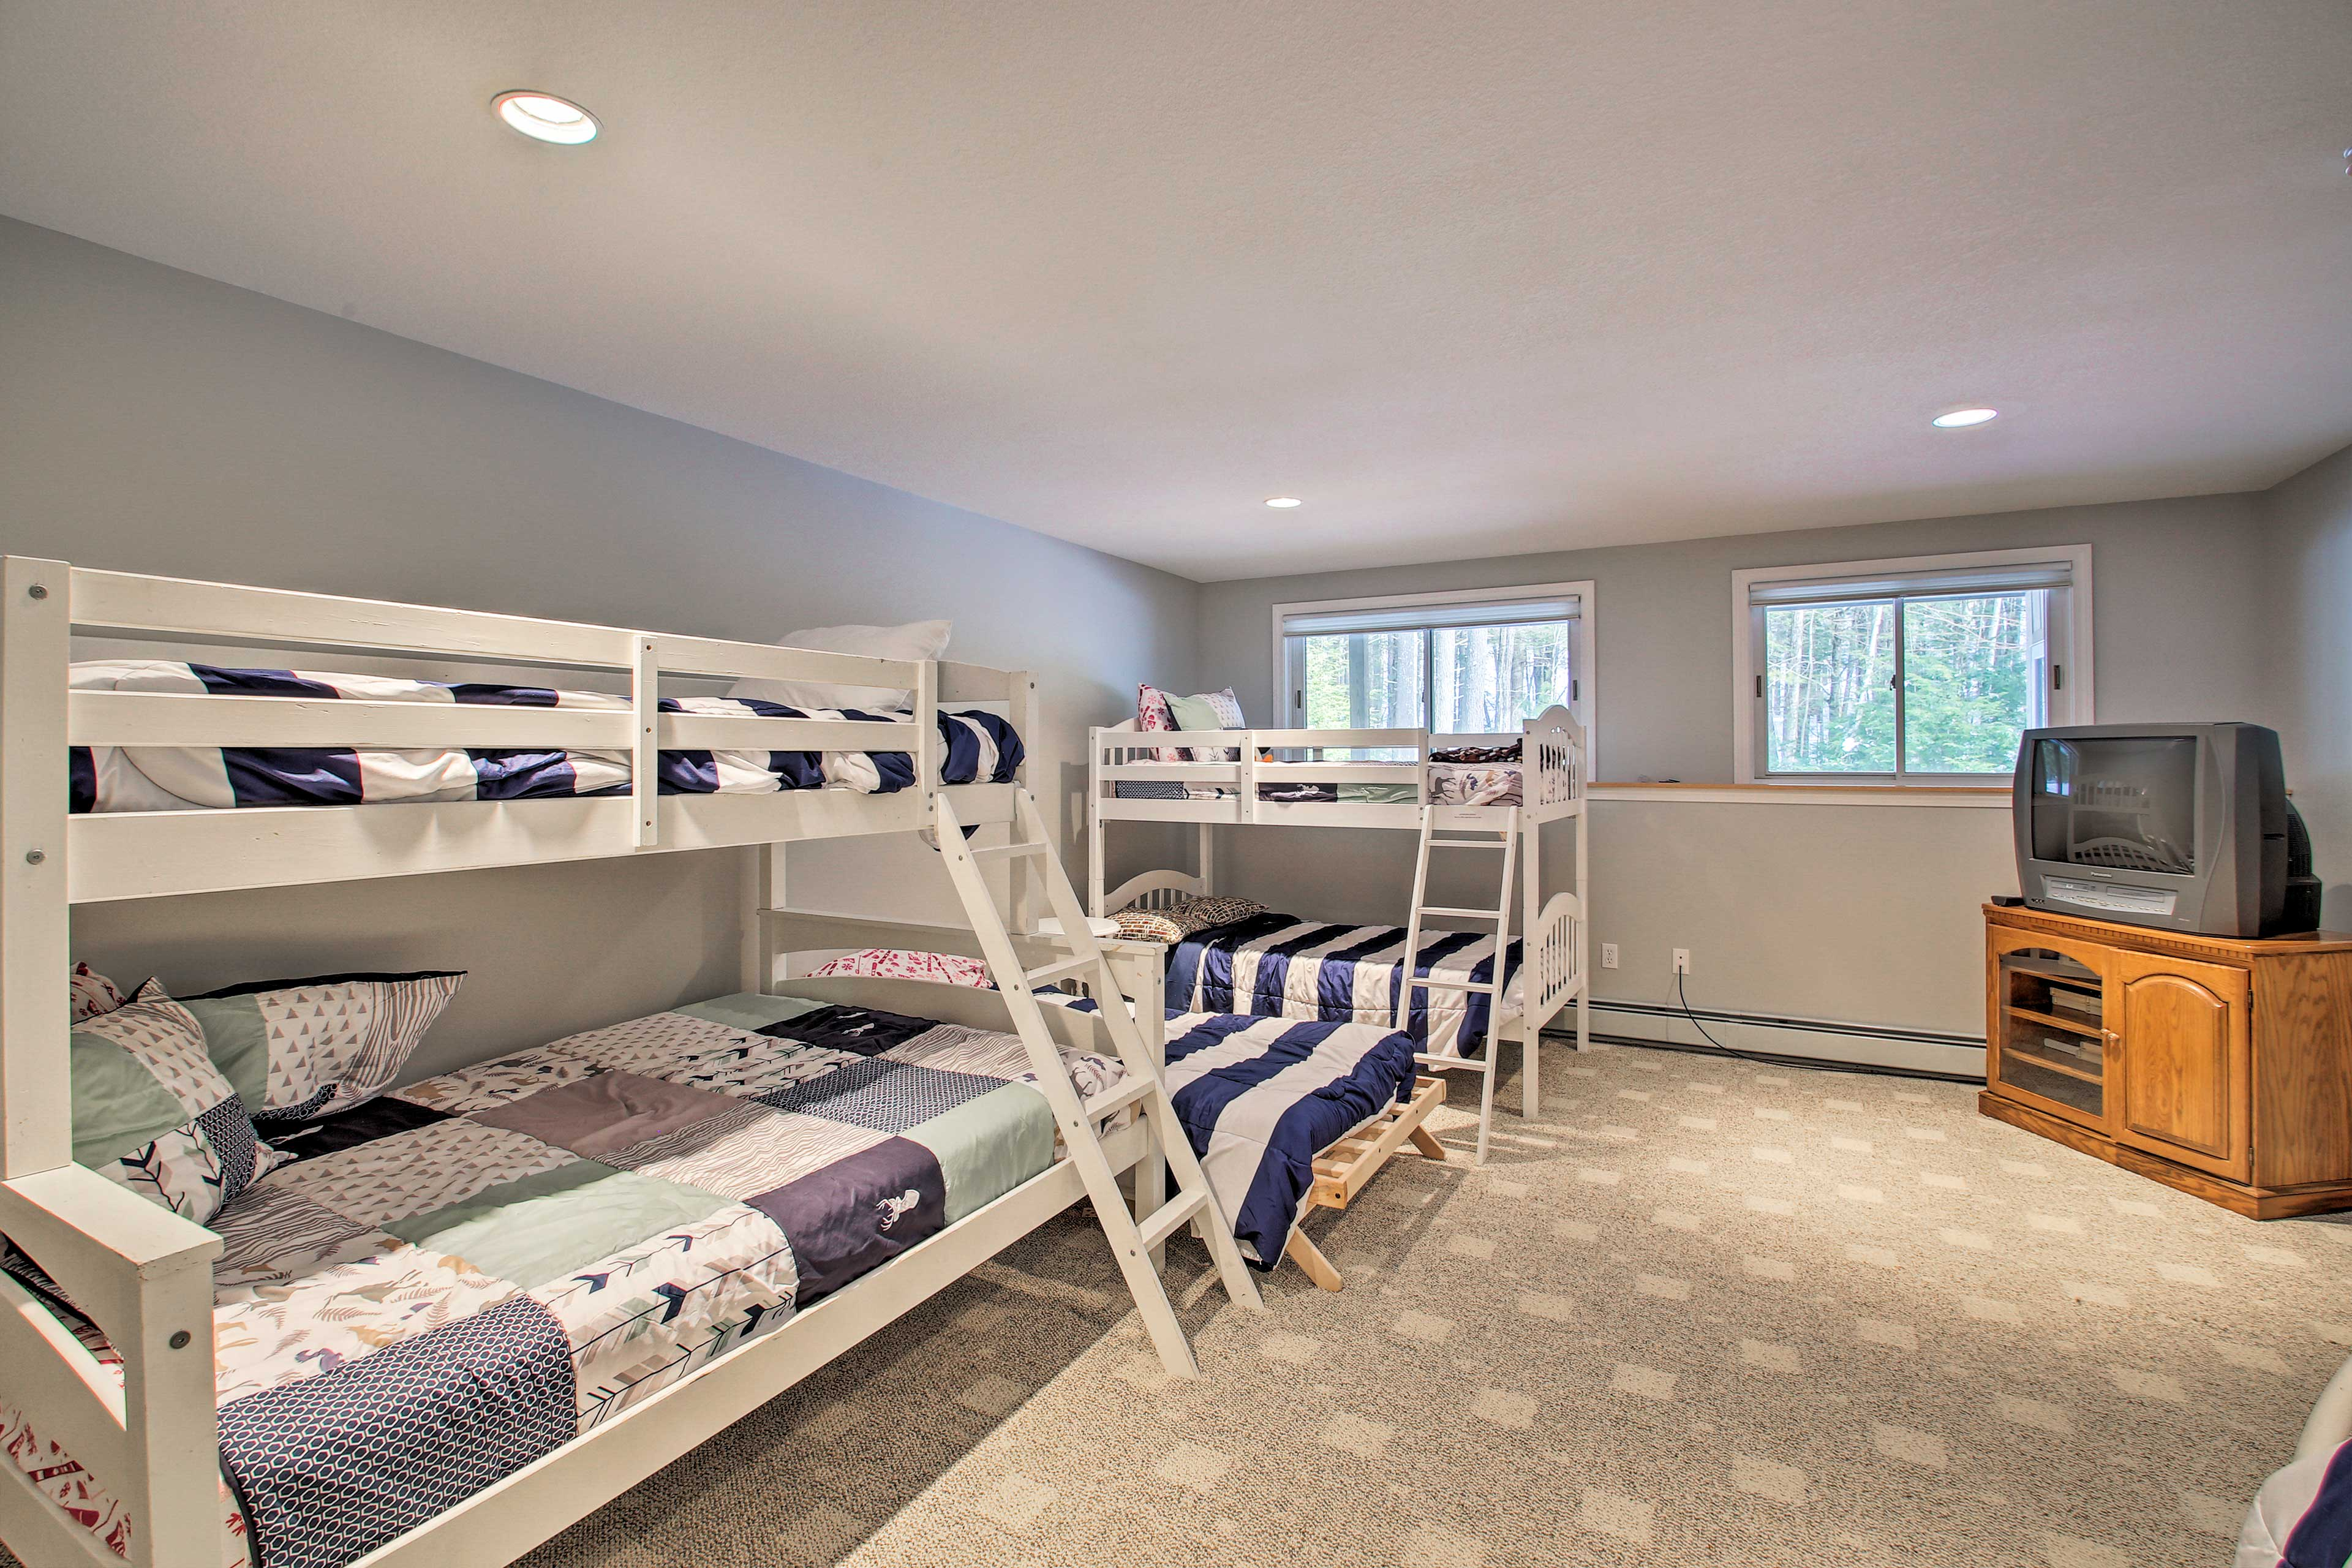 The bunk room sleeps up to 6 guests.